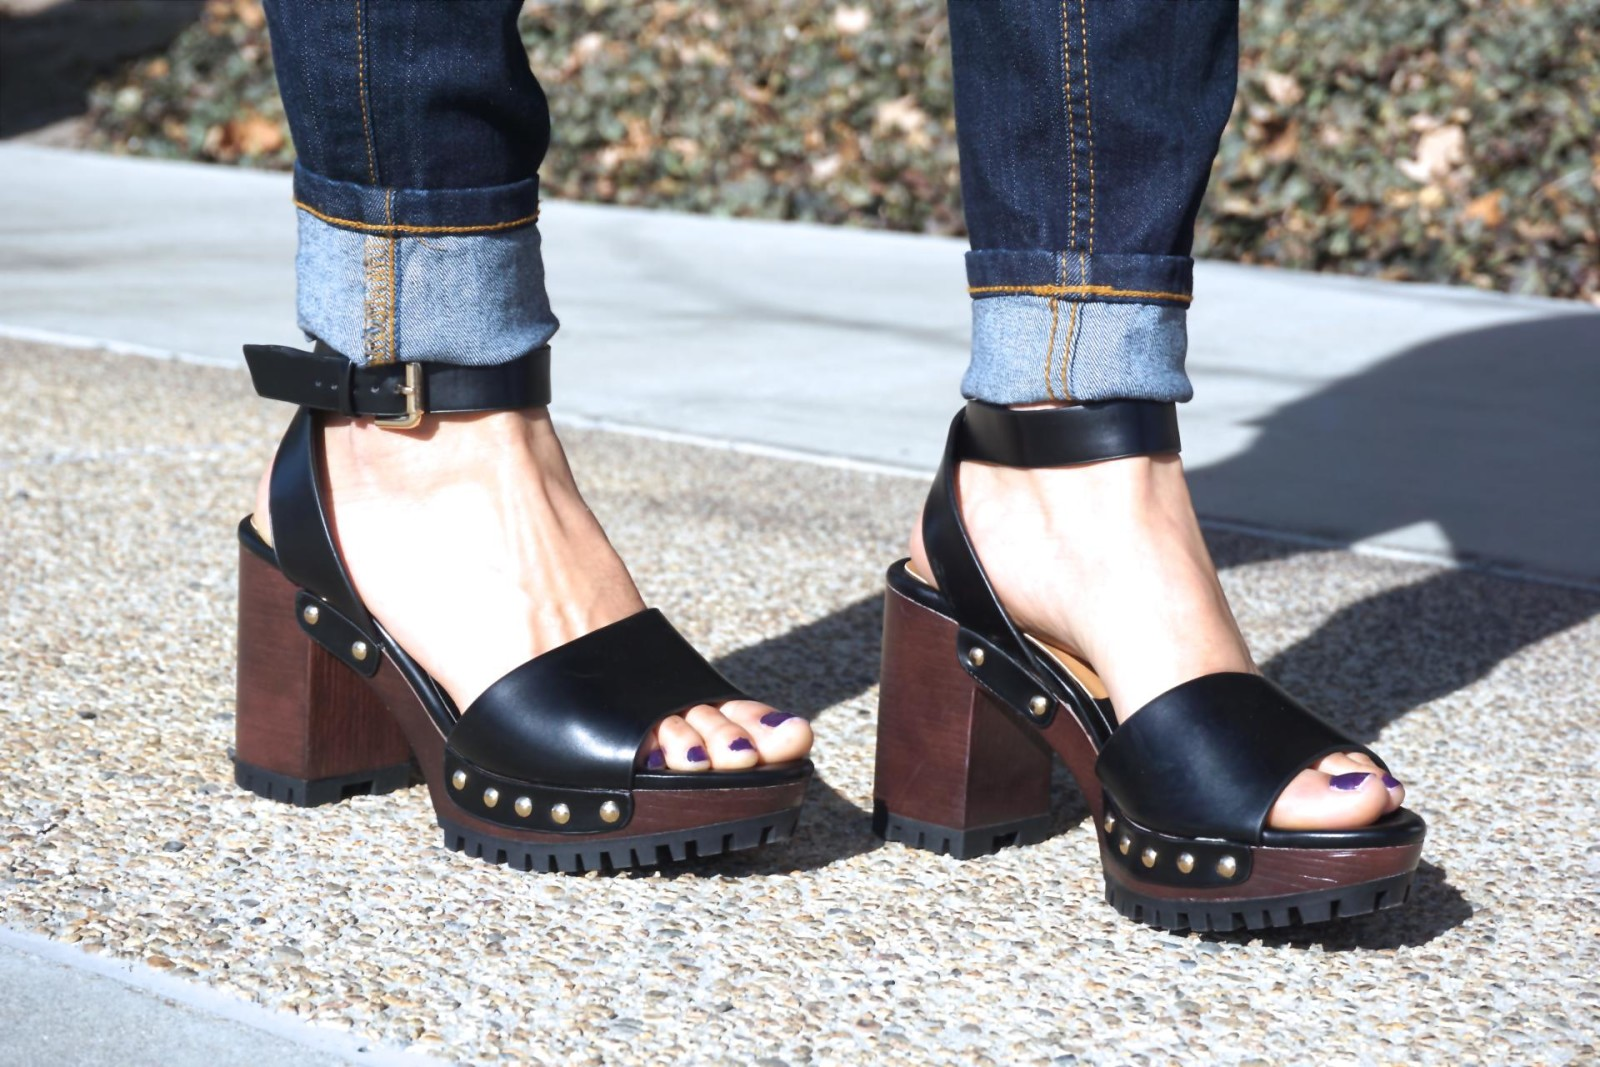 Zara Shoes, Sandals with Ankle strap and track sole, Black sandals, Spring shoes, Dark denim, cuffed jeans